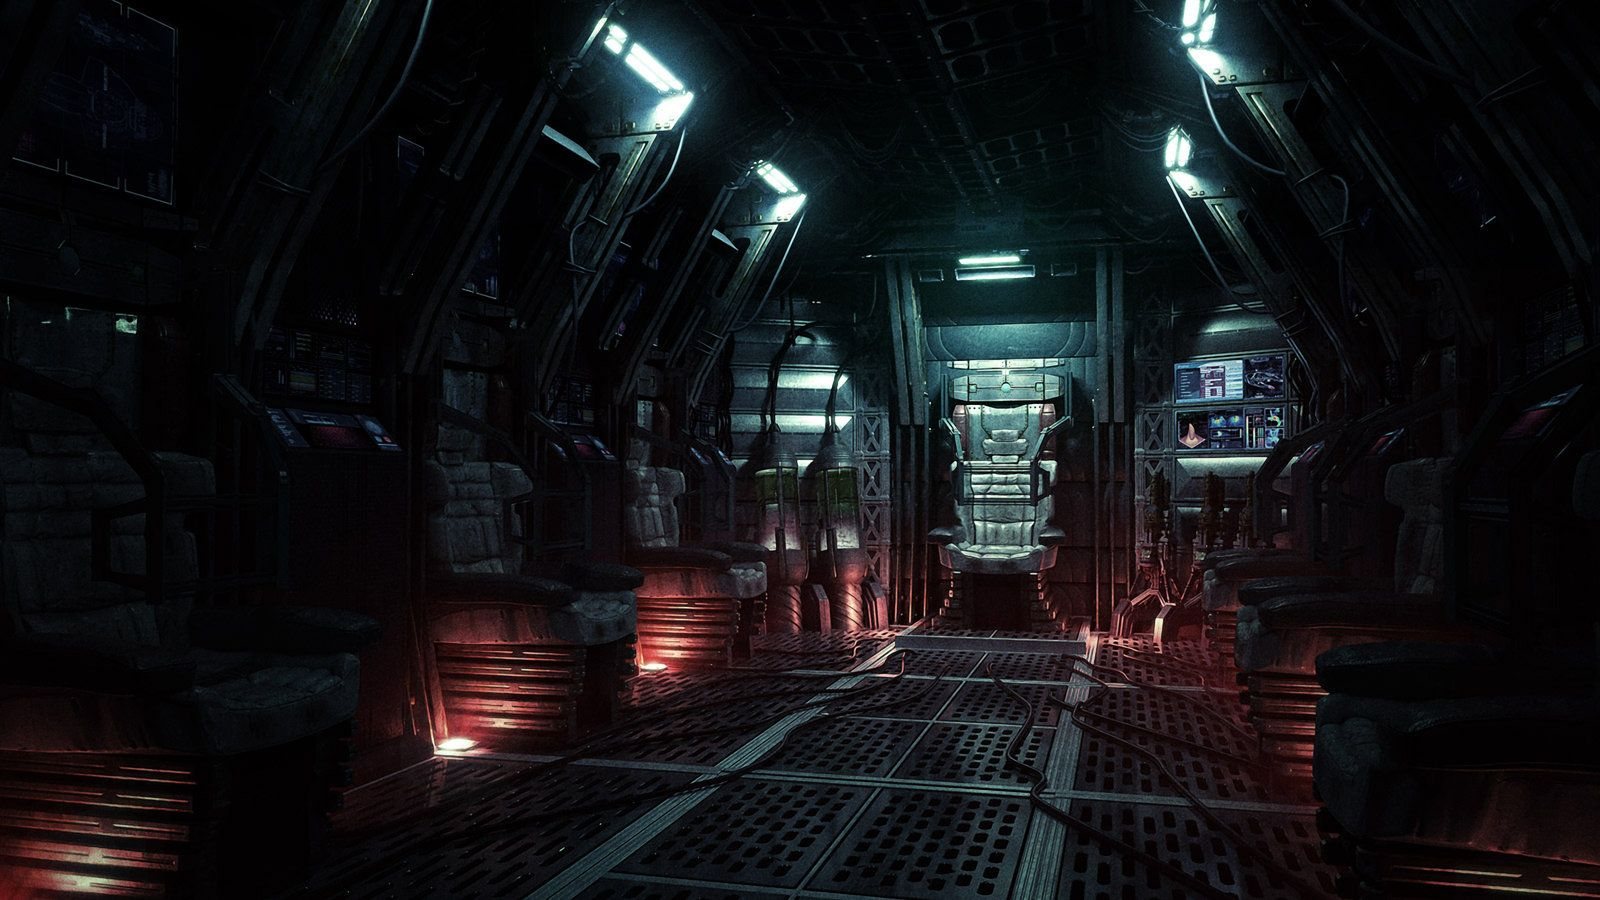 Spaceship Cabine By Radoxist On Deviantart Space Station Outer Space Wallpaper Sci Fi Environment